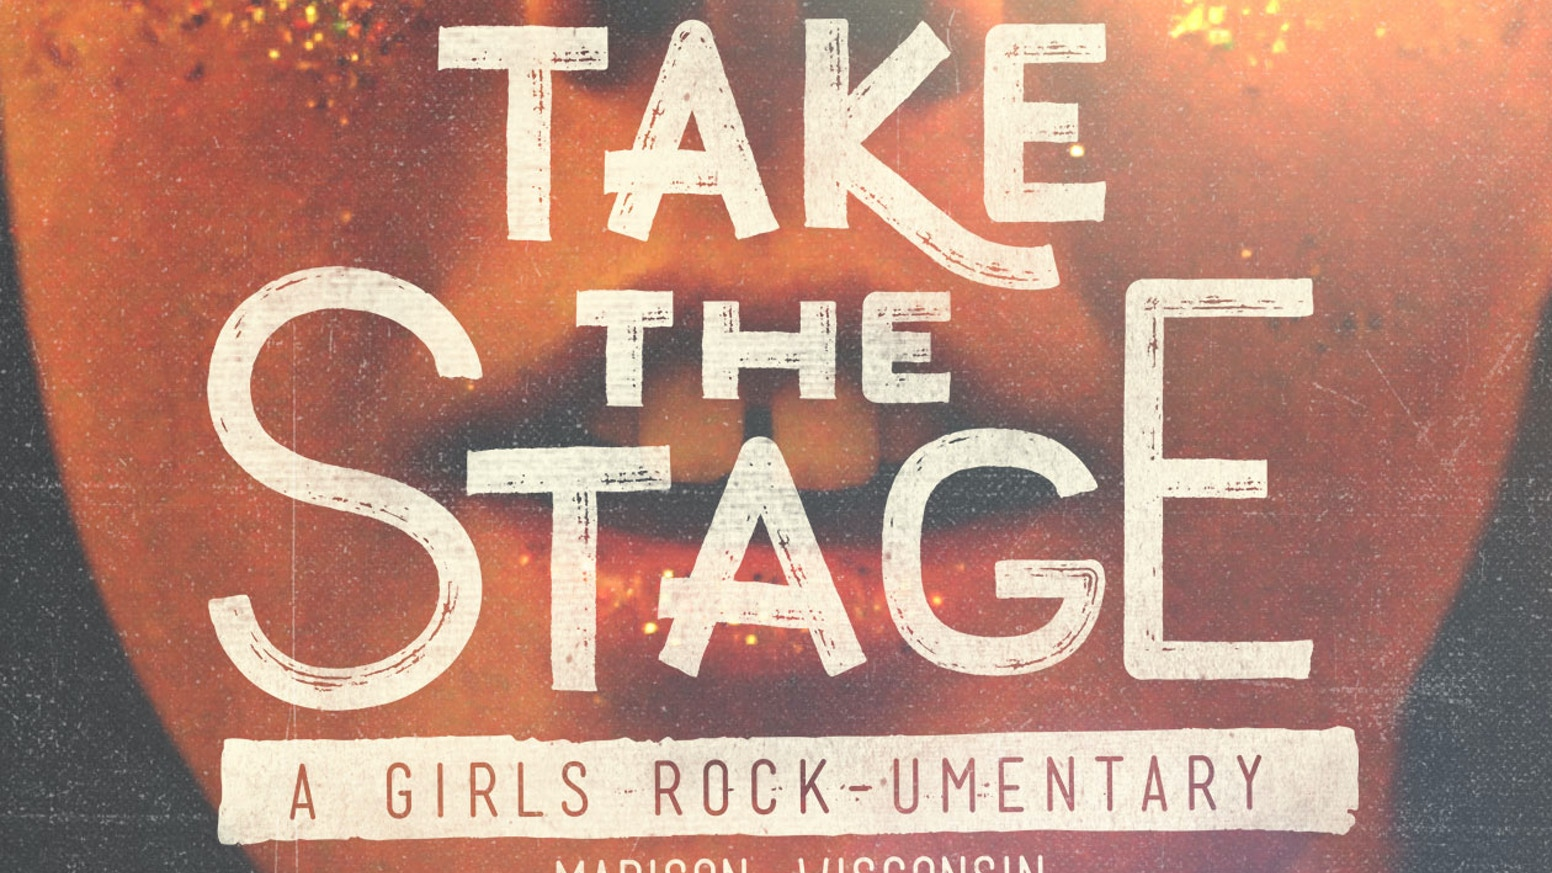 Growing up is hard, becoming a rock star is harder. Let's face it,